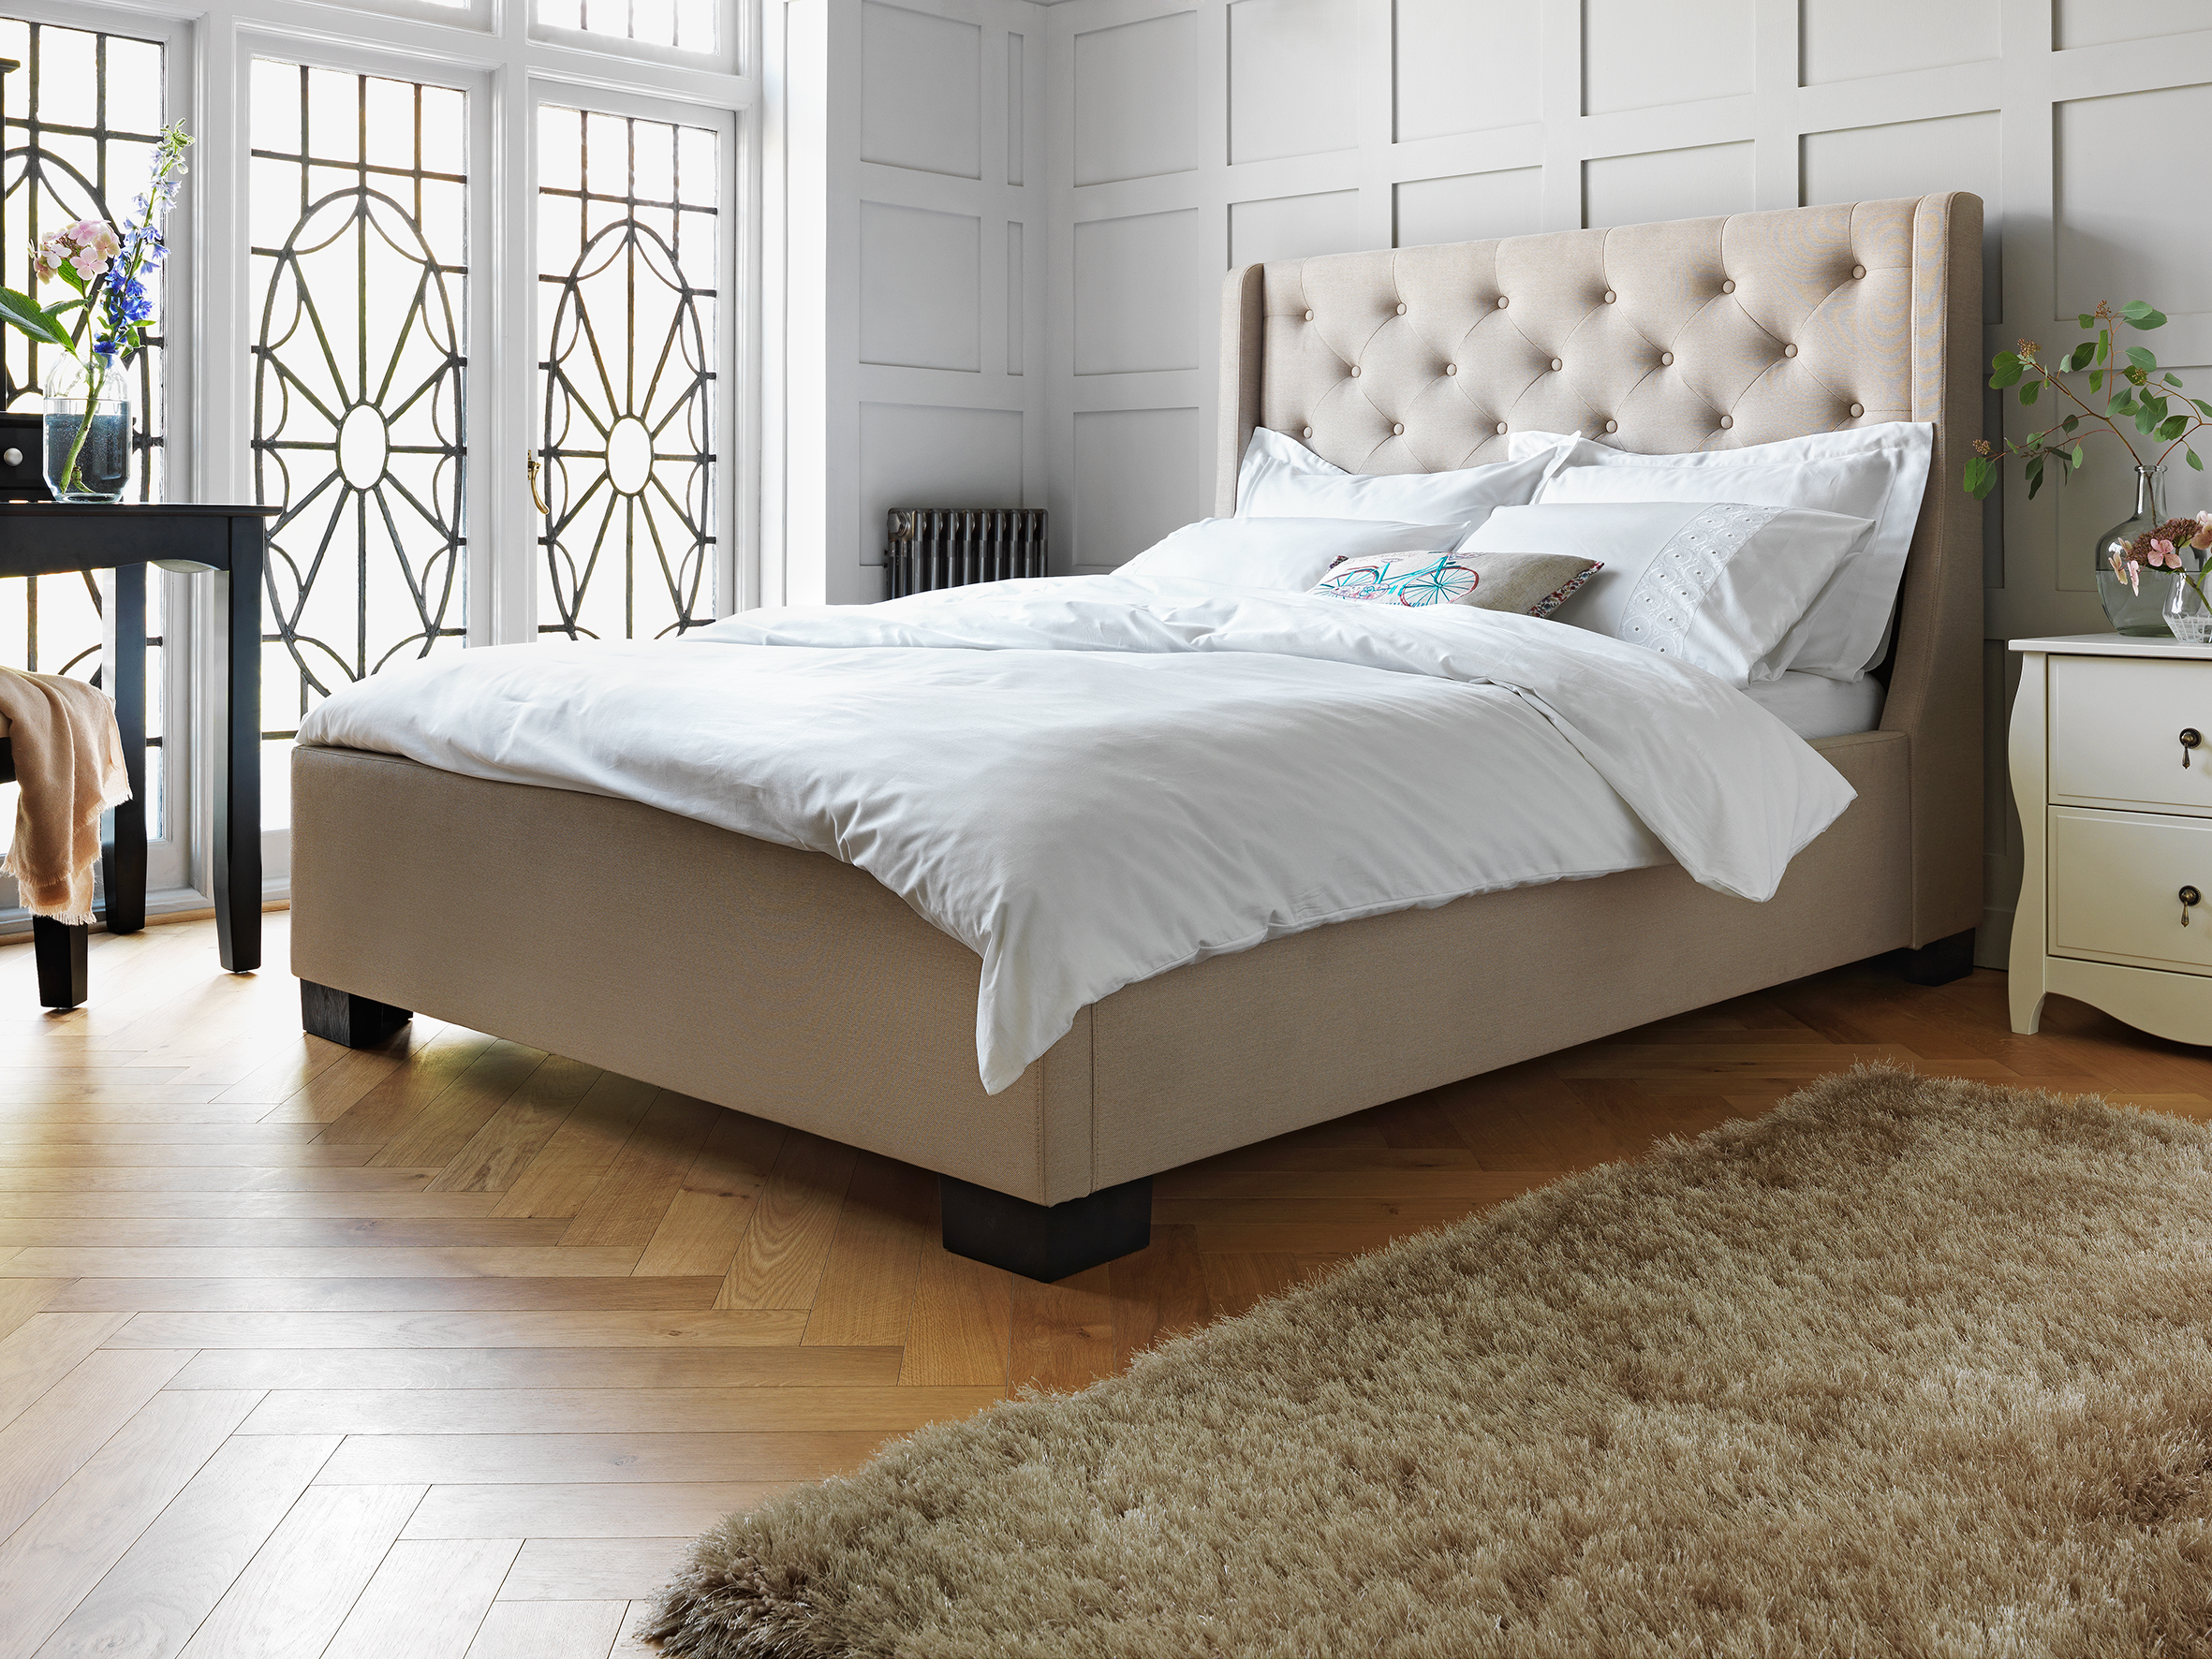 Buy Argos Home Levena Double Quilted Bed Frame - Natural | Bed ...